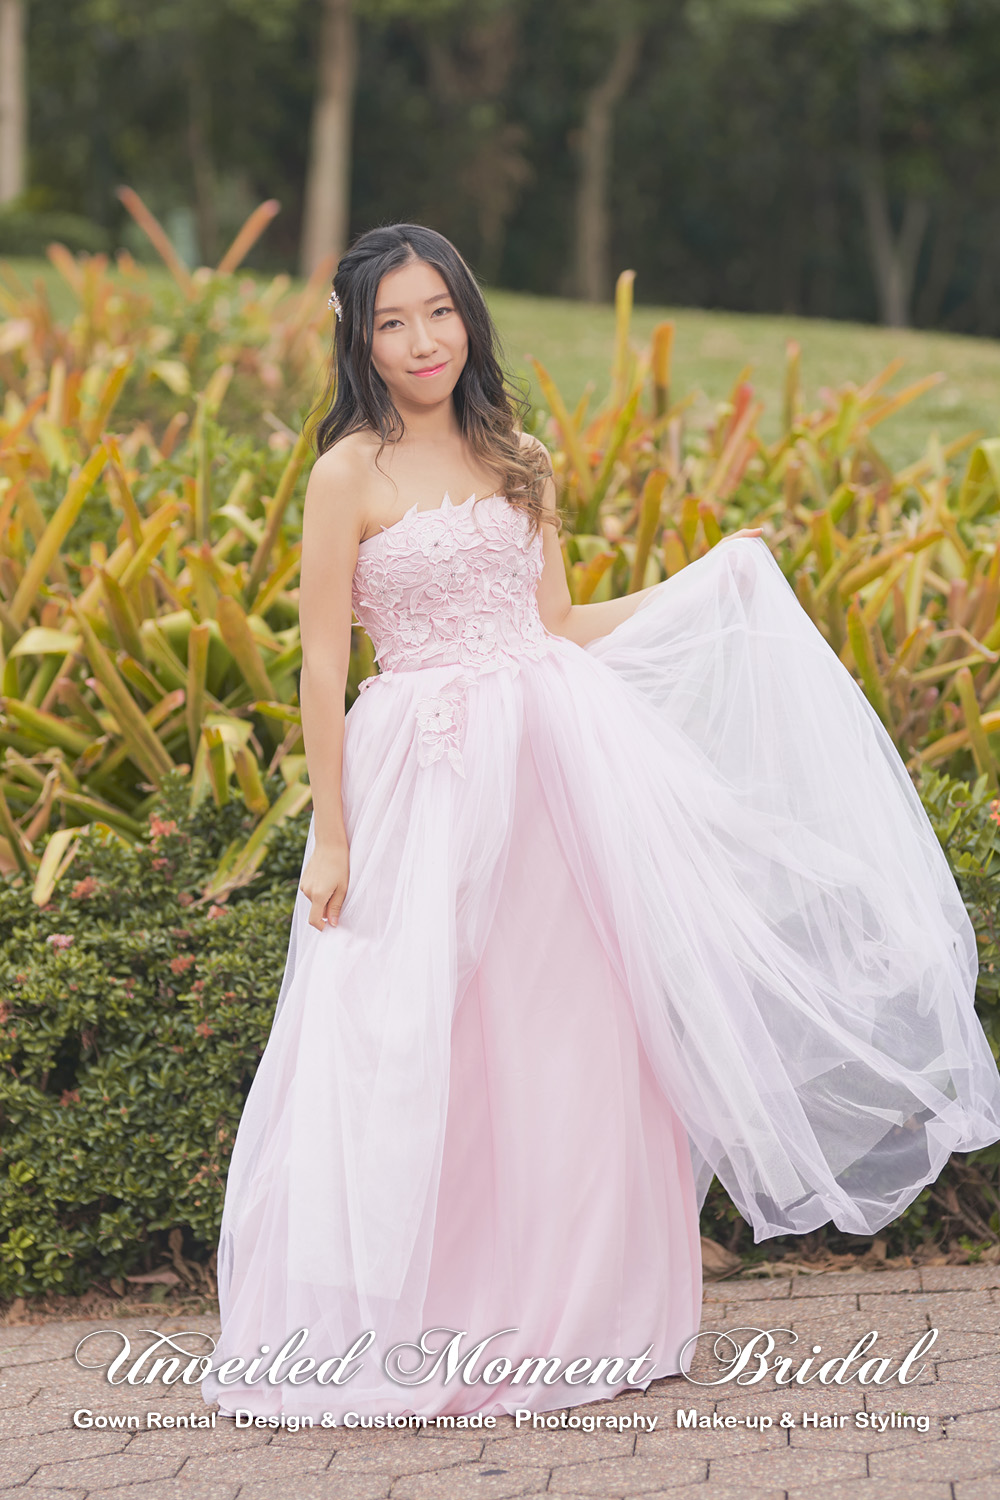 Pink, strapless party dress with lace and crystal embellishments. 粉紅色, 無肩帶, 蕾絲及水晶裝飾, 多層輕紗裙擺宴會晚裝裙